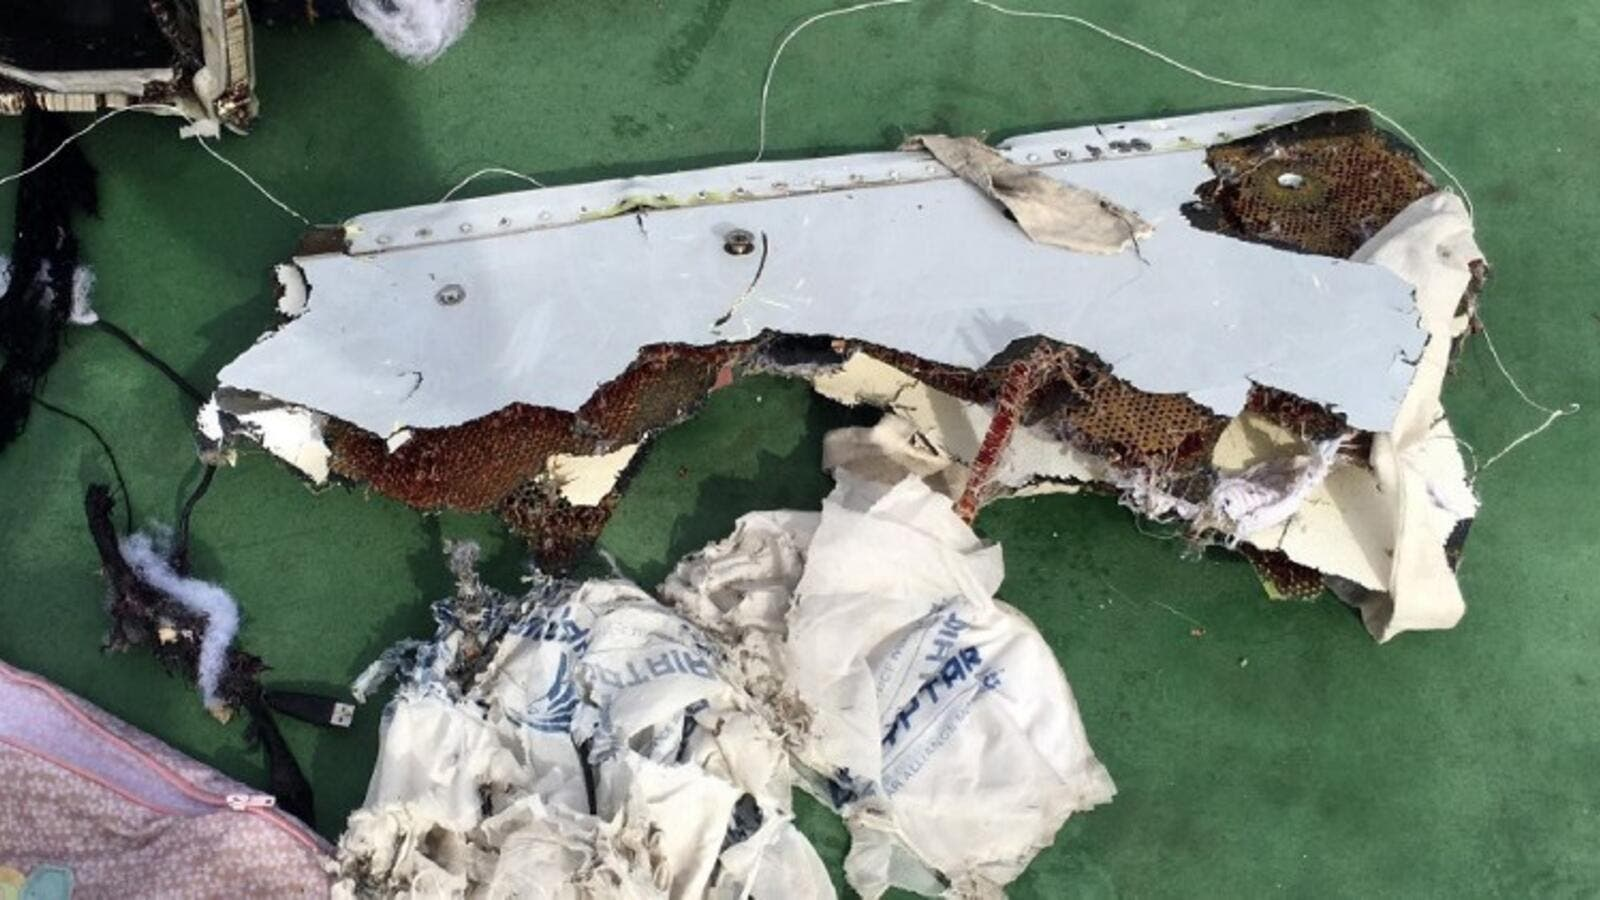 Wreckage from the EgyptAir flight. (AFP/File)